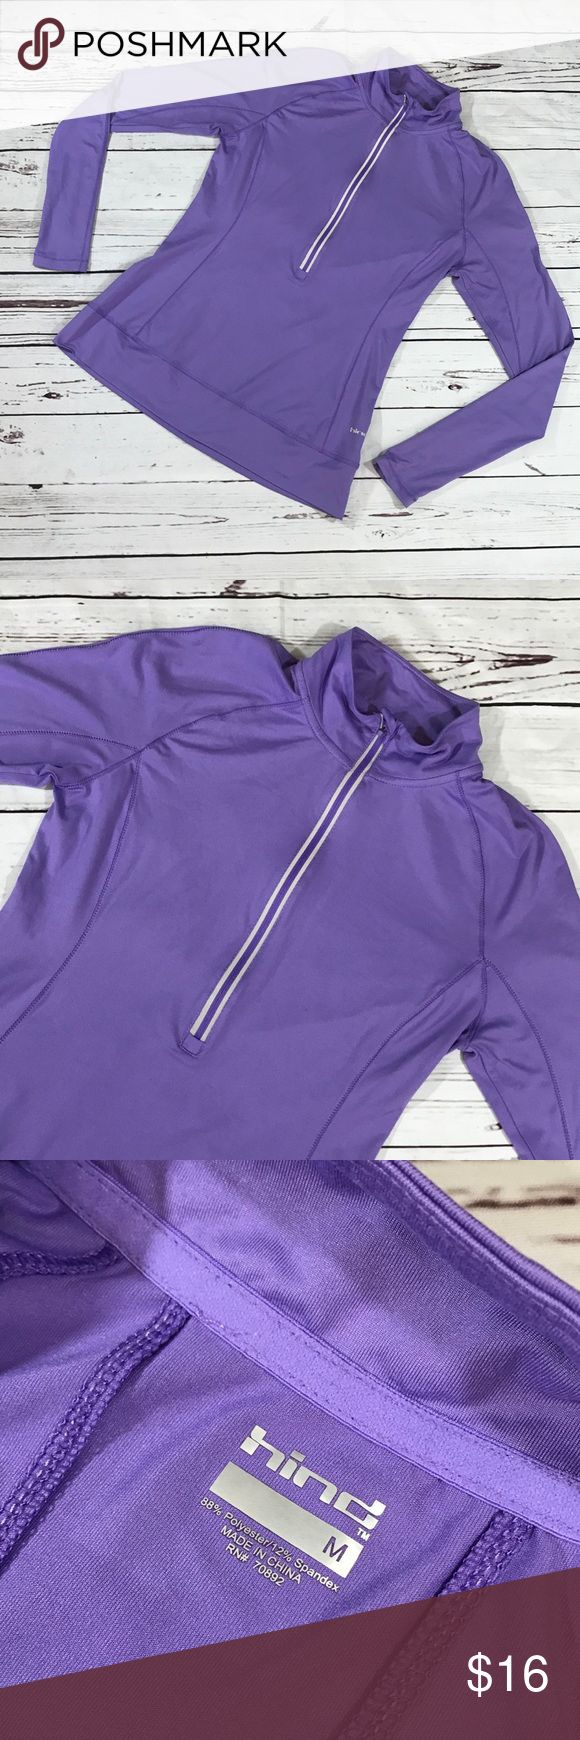 """Hind Half-Zip Long Sleeve Pullover Size M Hind long sleeve Purple half-zip pullover size M. Has a reflective zipper, thumbholes, form fitting. Perfect for running. Please feel free to ask questions. Fabric: 88% Polyester, 12% Spandex. Measurements approx: underarm to underarm 18"""", shoulder to hem 25"""". Hind Jackets & Coats"""